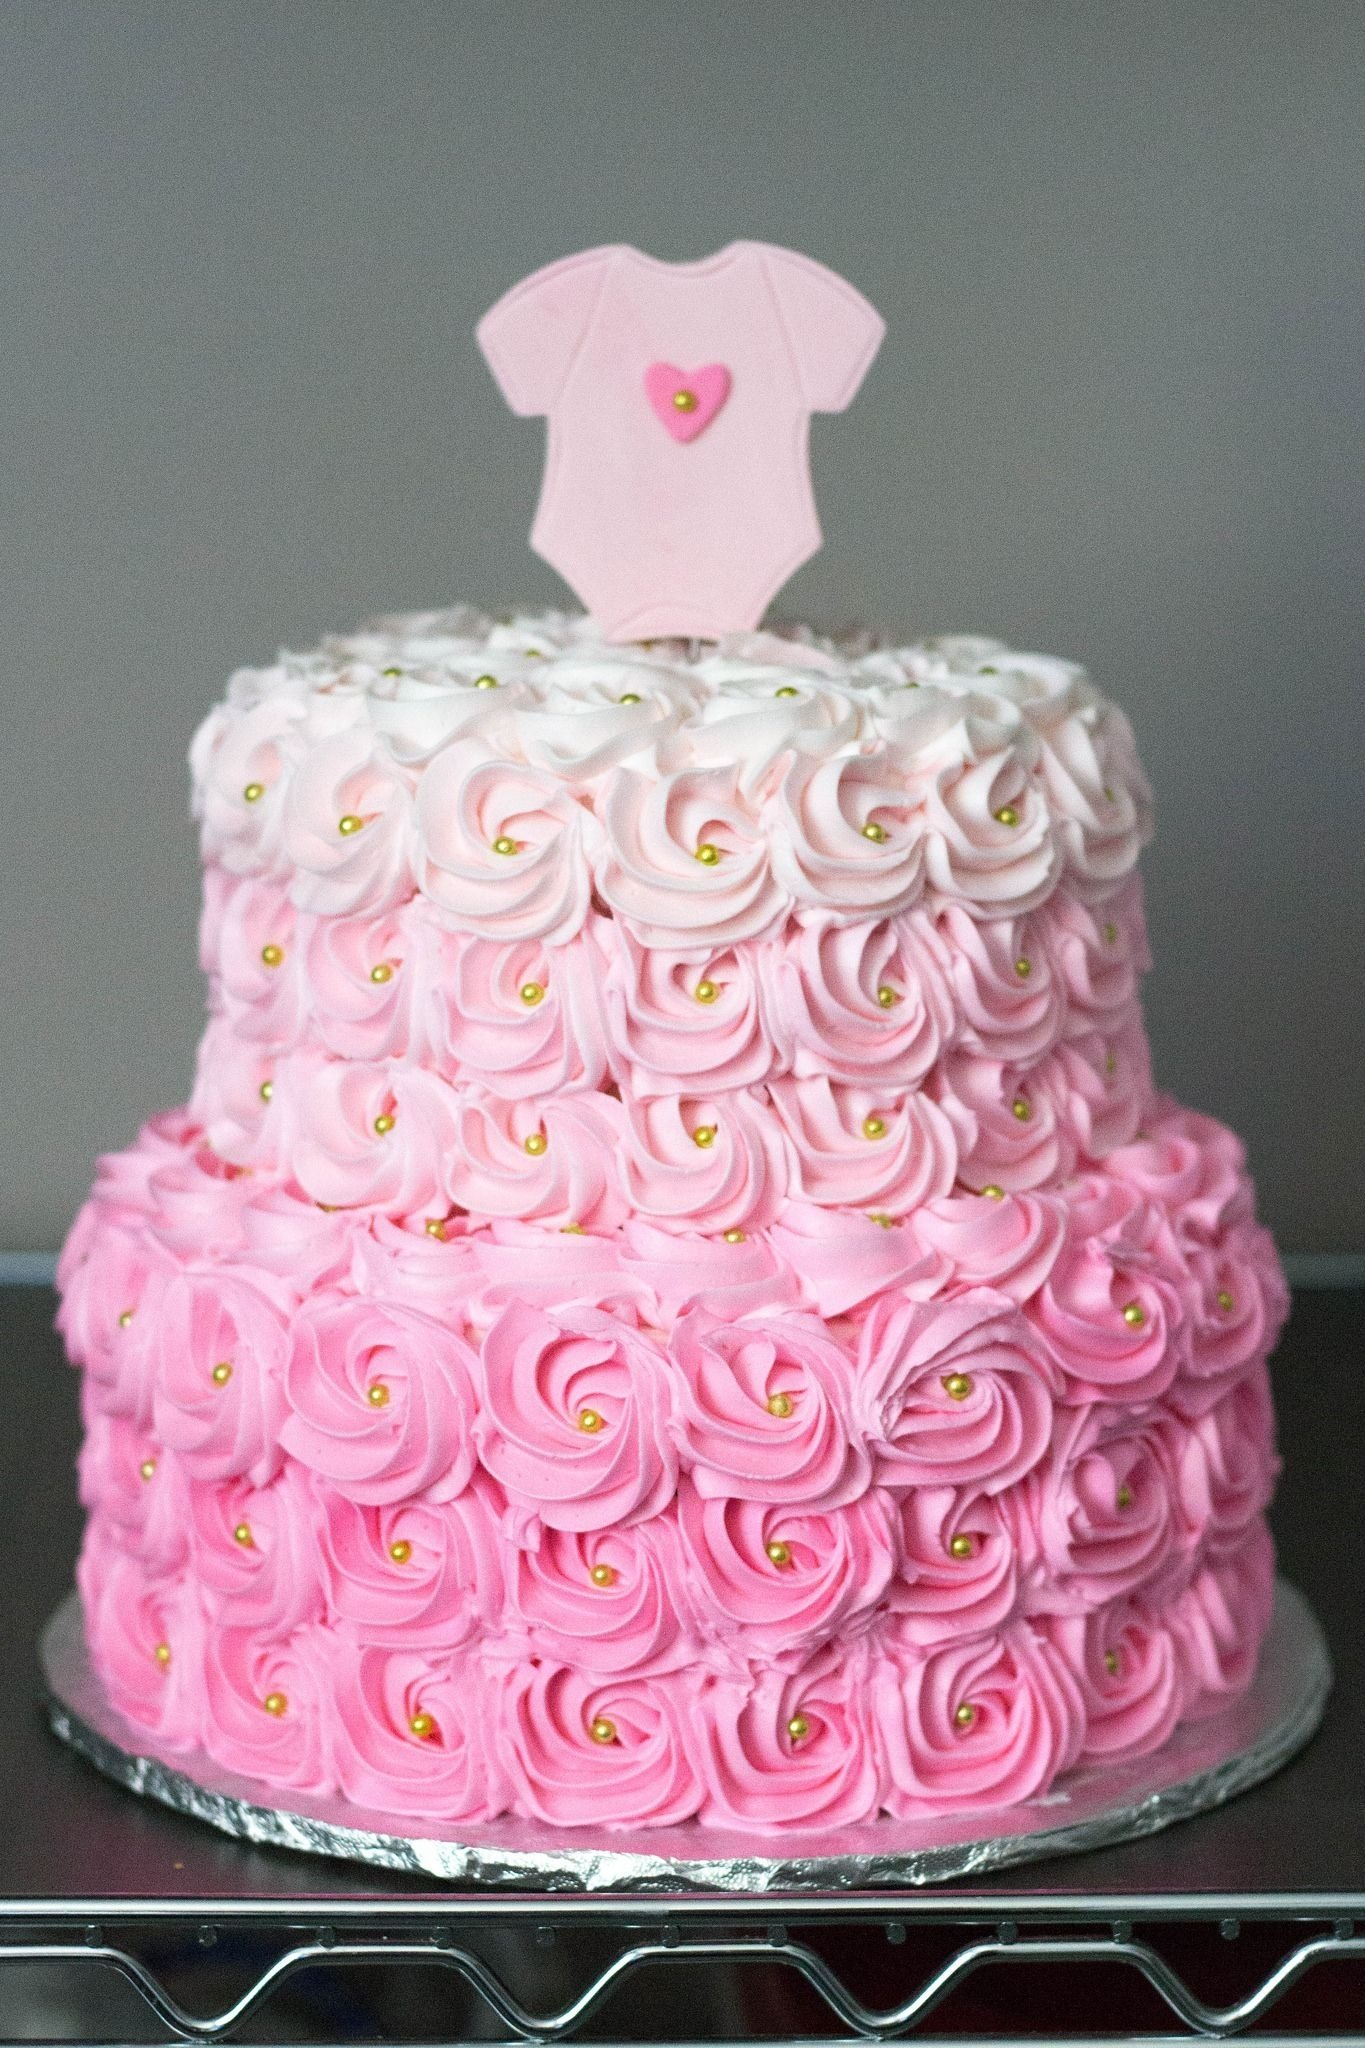 10 Beautiful Girl Baby Shower Cake Ideas pink ombre rosette baby shower cake shower cakes rosettes and ombre